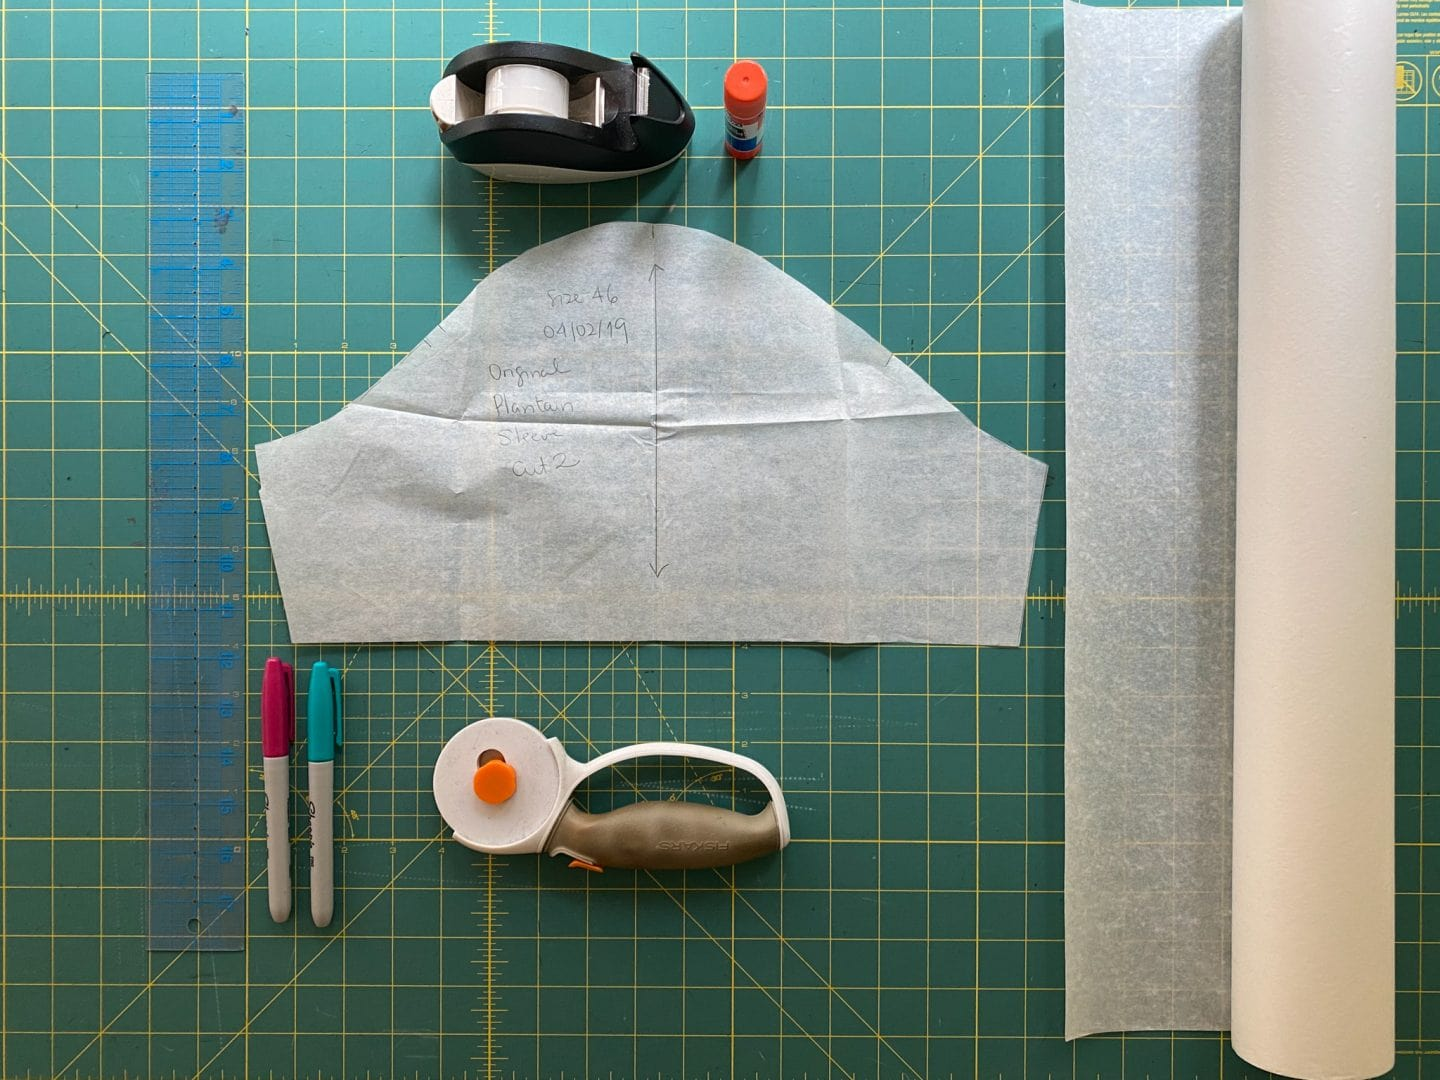 Image of materials to hack sleeve pattern: pattern piece, ruler, markers, tape/glue, cutter/scissors, and paper—lots of it!